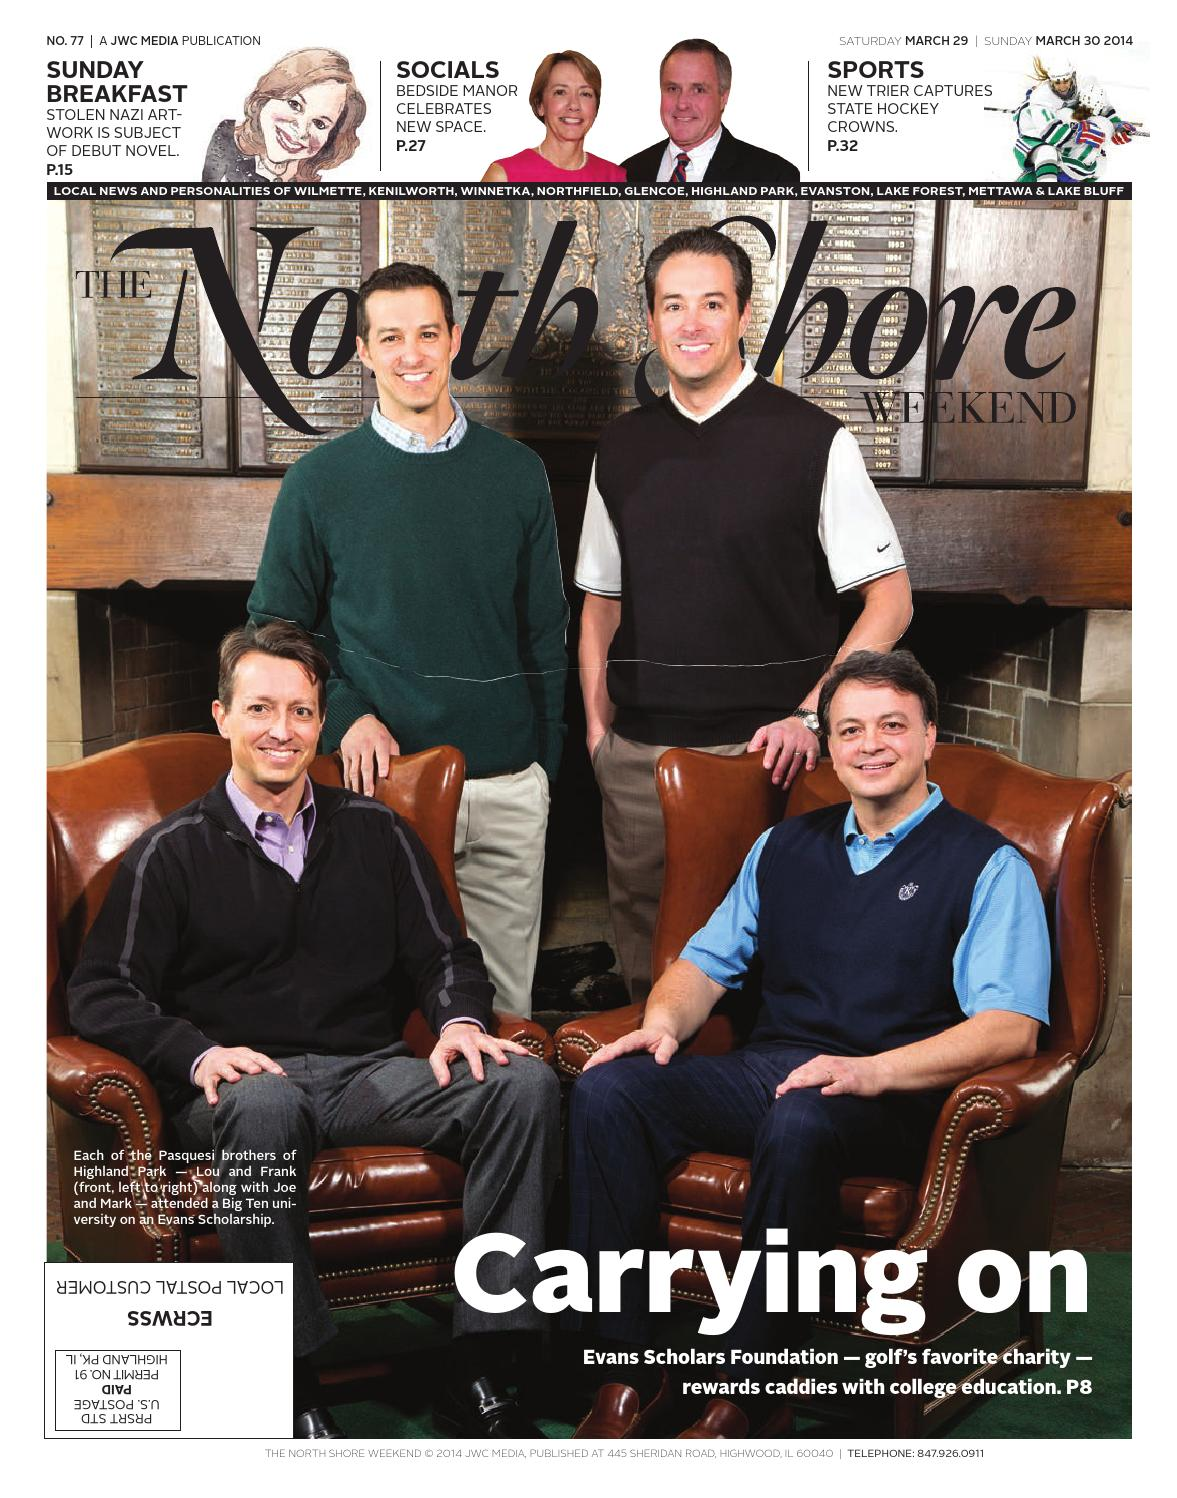 the north shore weekend east issue 77 by jwc media issuu